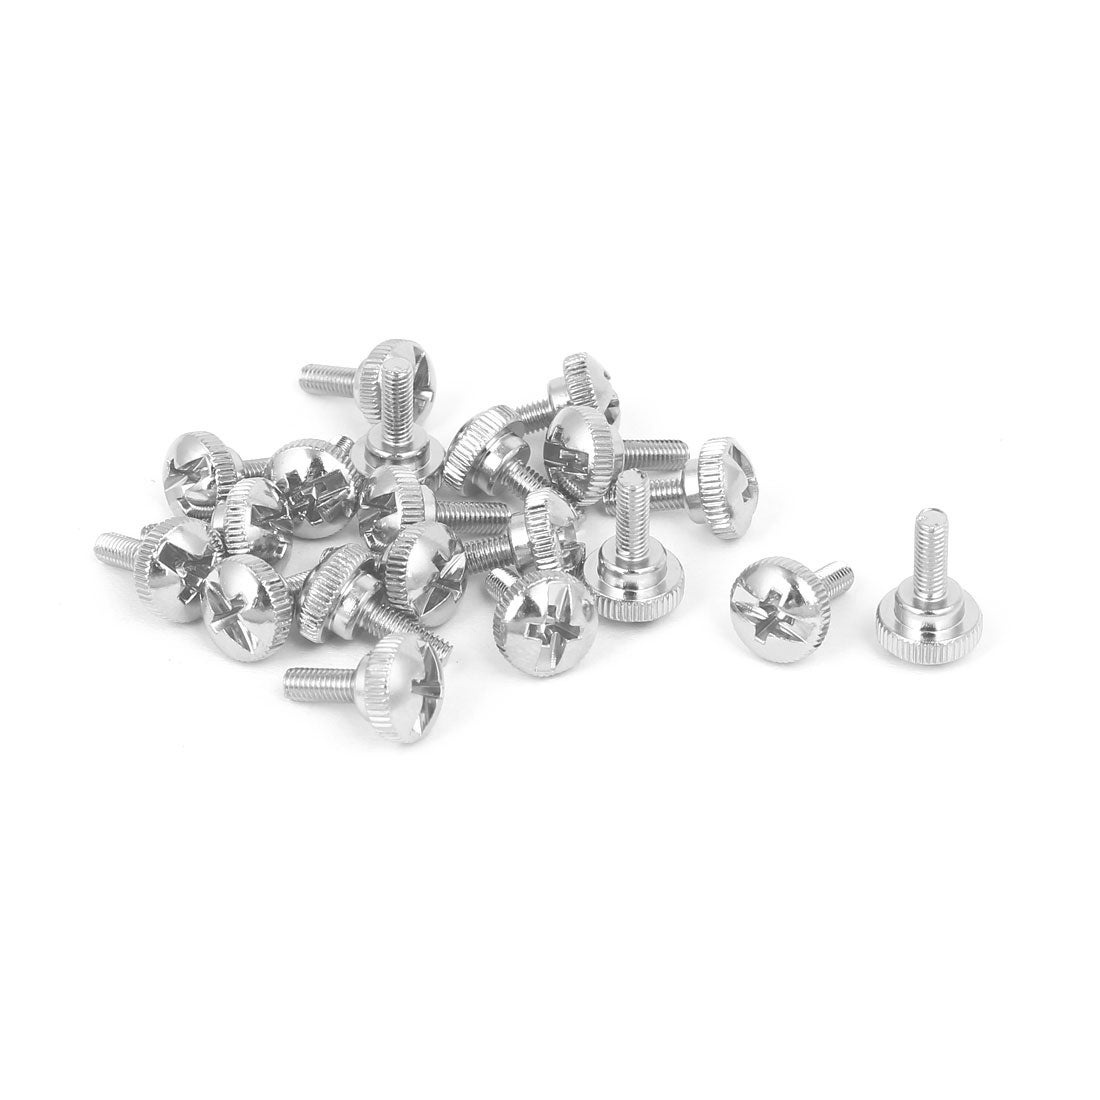 M3x6mm Round Shape Knurled Phillips Head Screw 20pcs for PC Computer Case